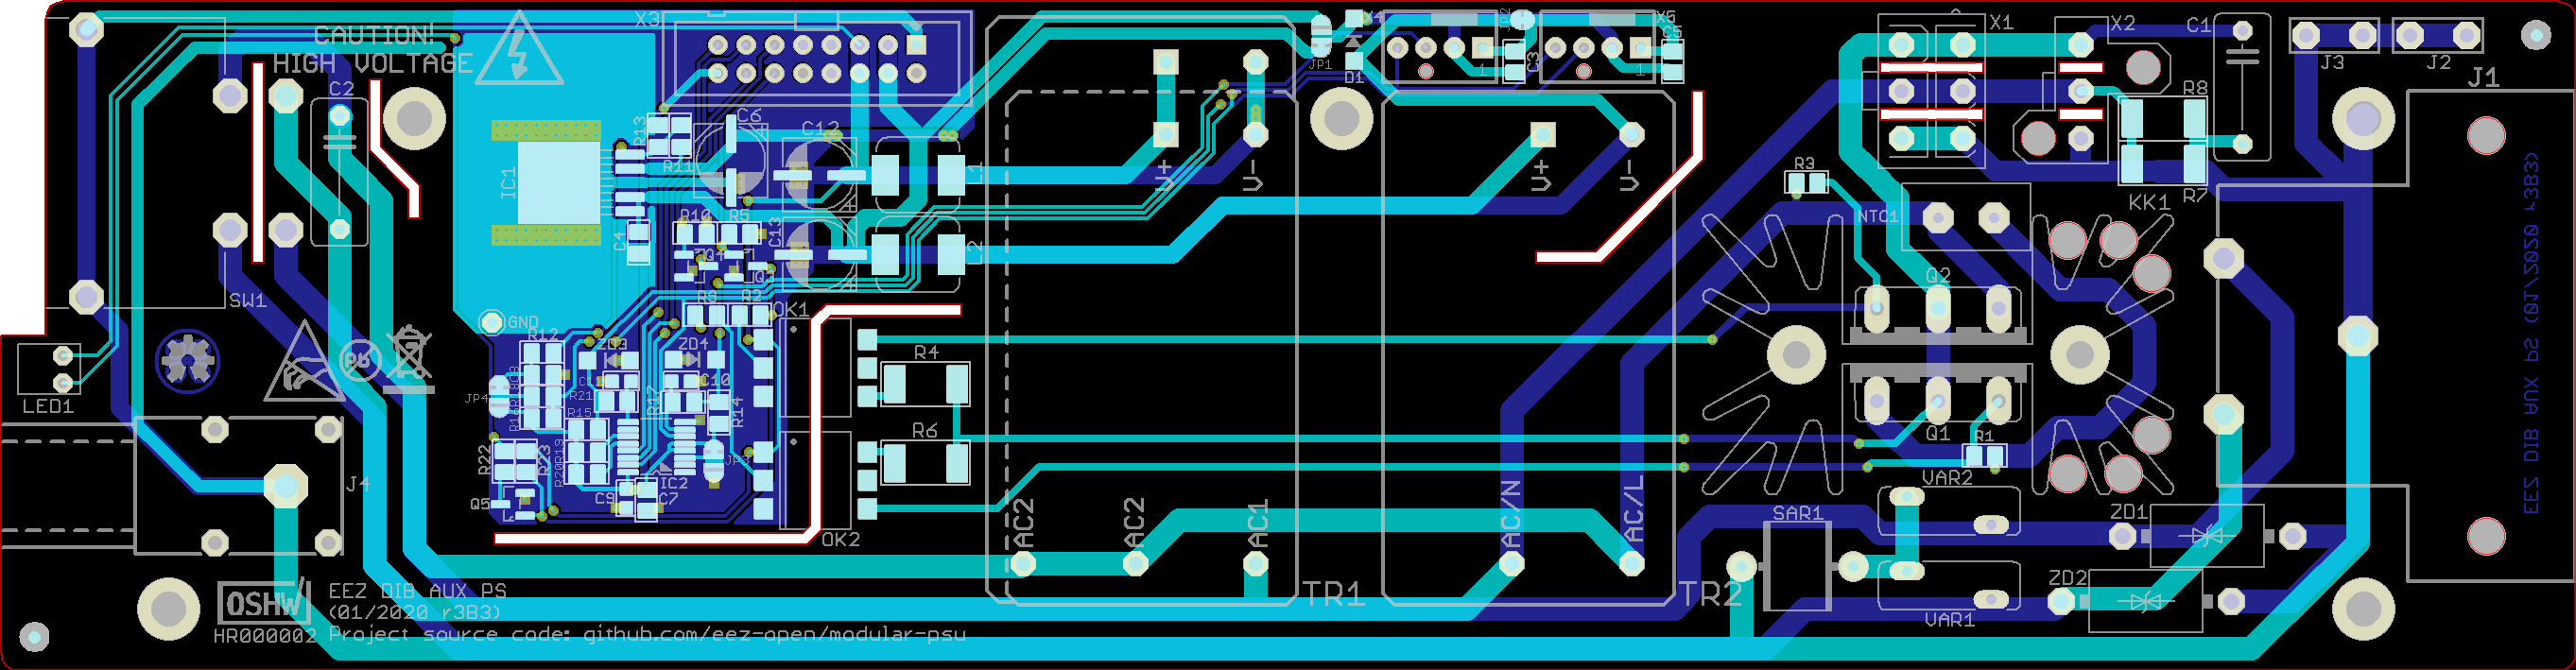 aux-ps_pcb_r3b3_top-bottom.png